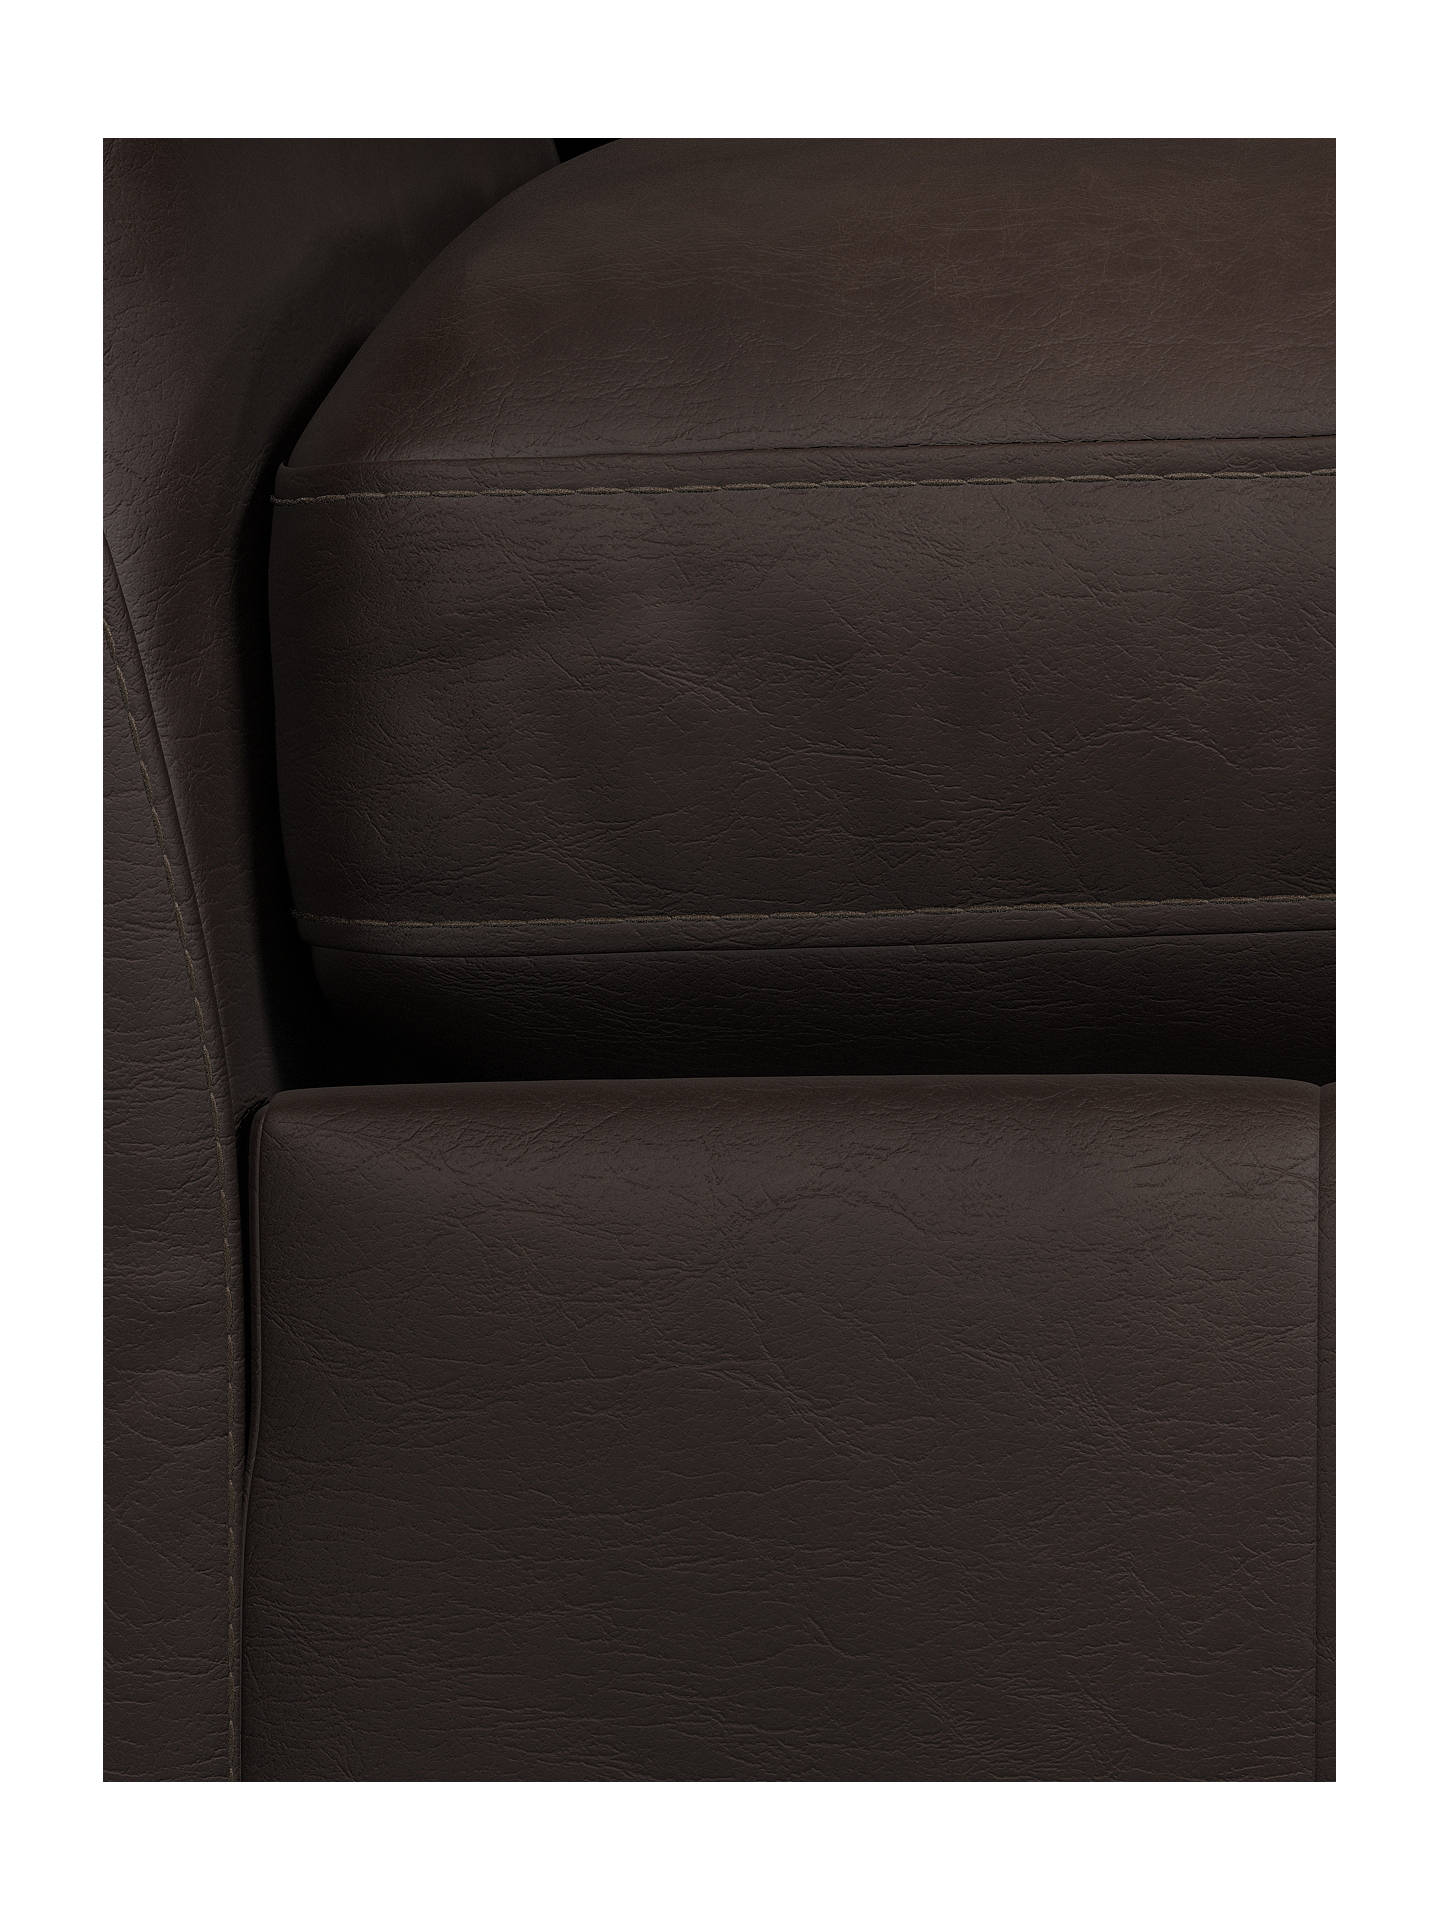 Buy John Lewis & Partners Tortona Leather Snuggler, Demetra Charcoal Online at johnlewis.com